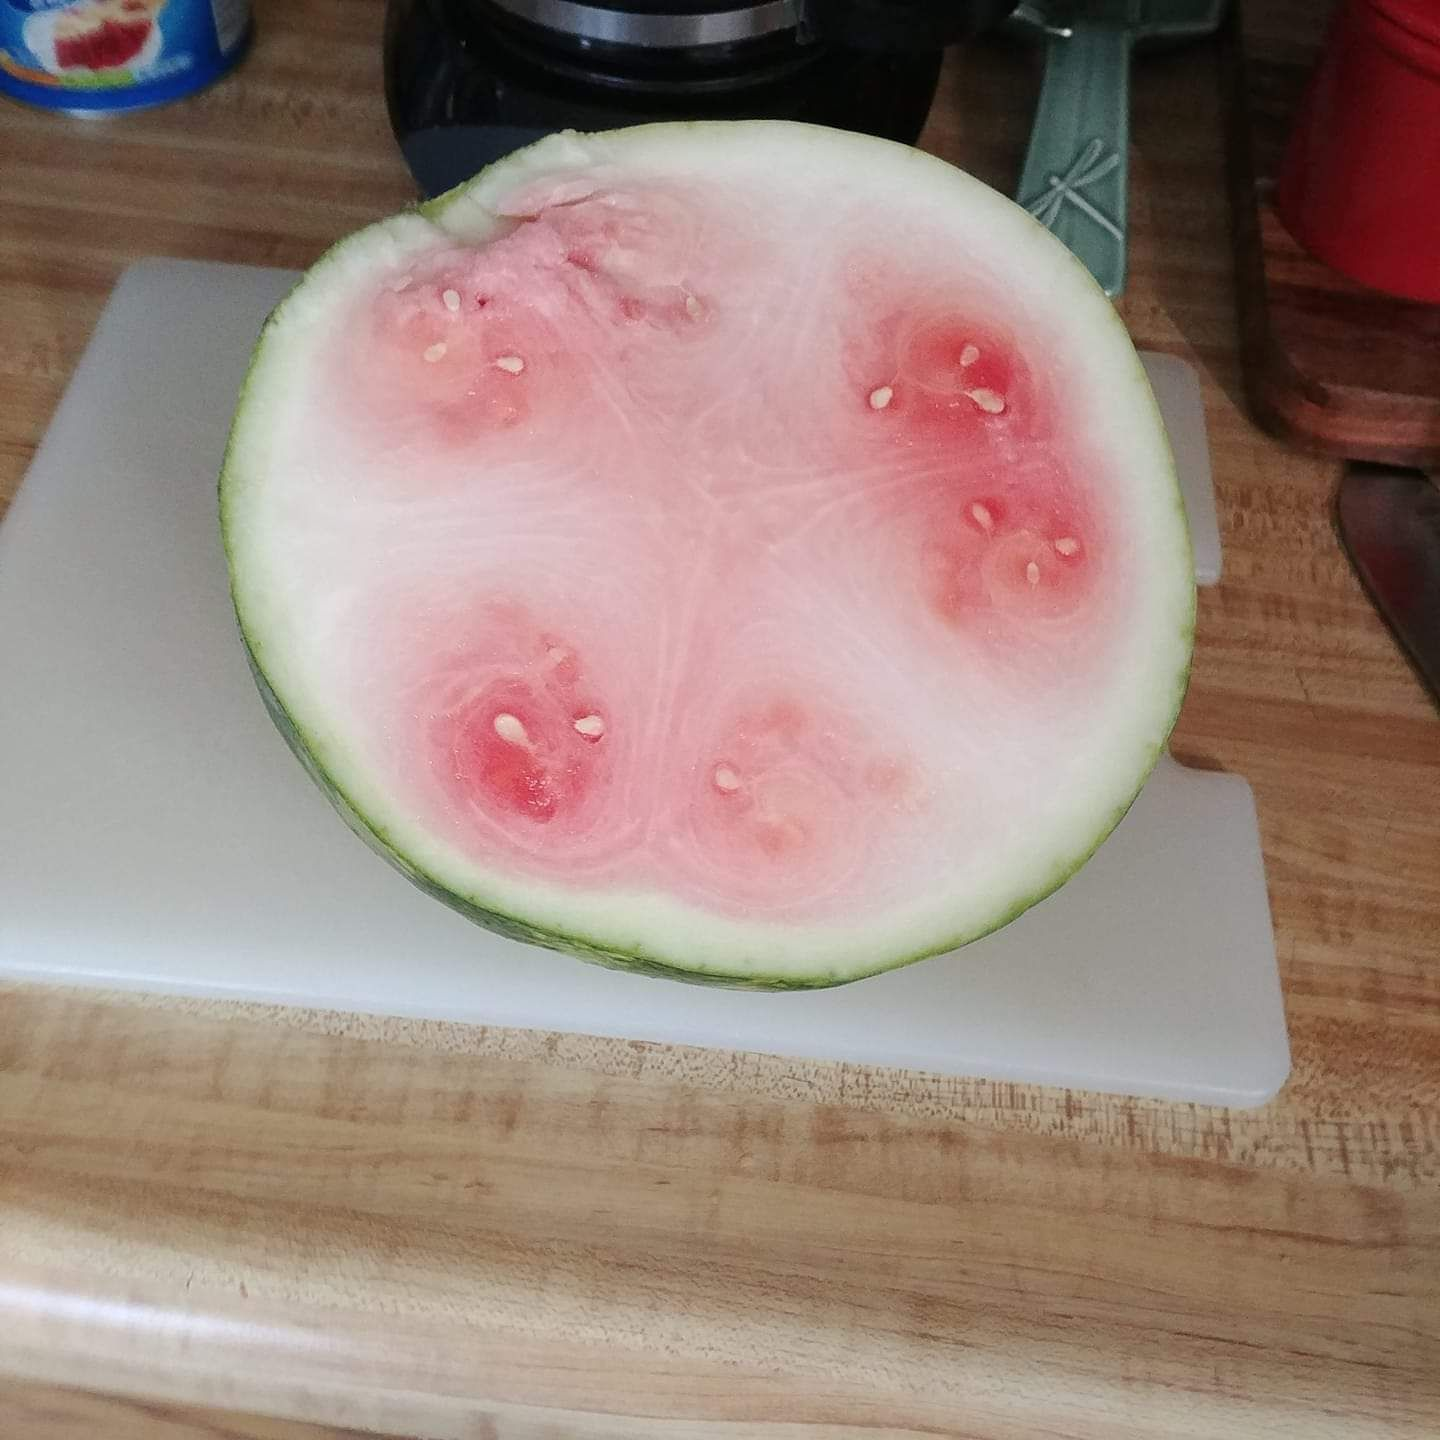 If 2020 was a watermelon